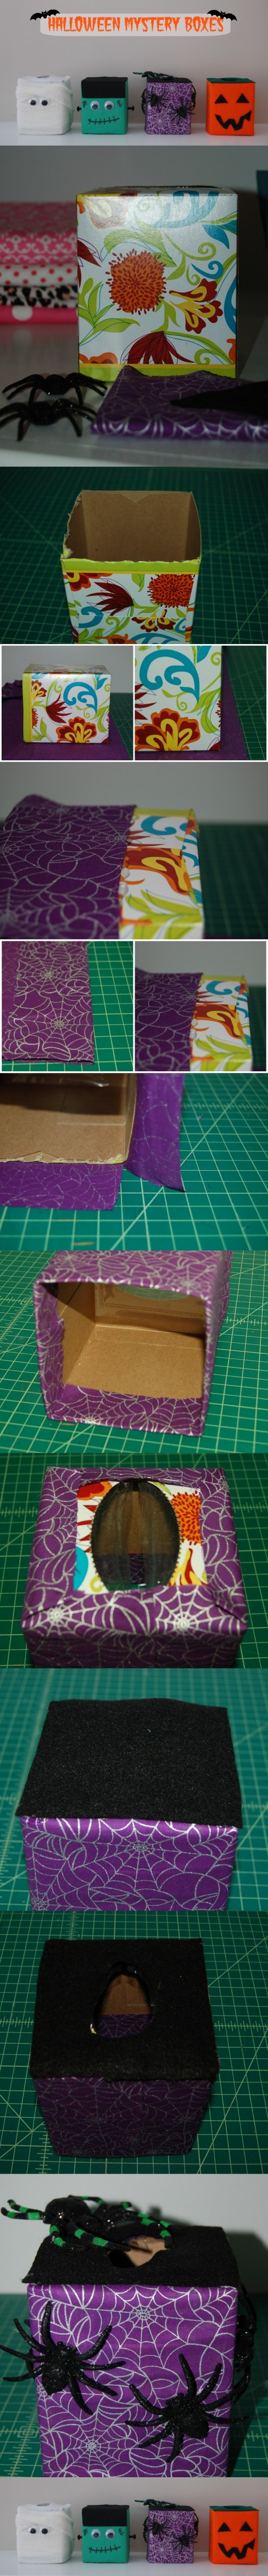 15. Halloween Mystery Boxes